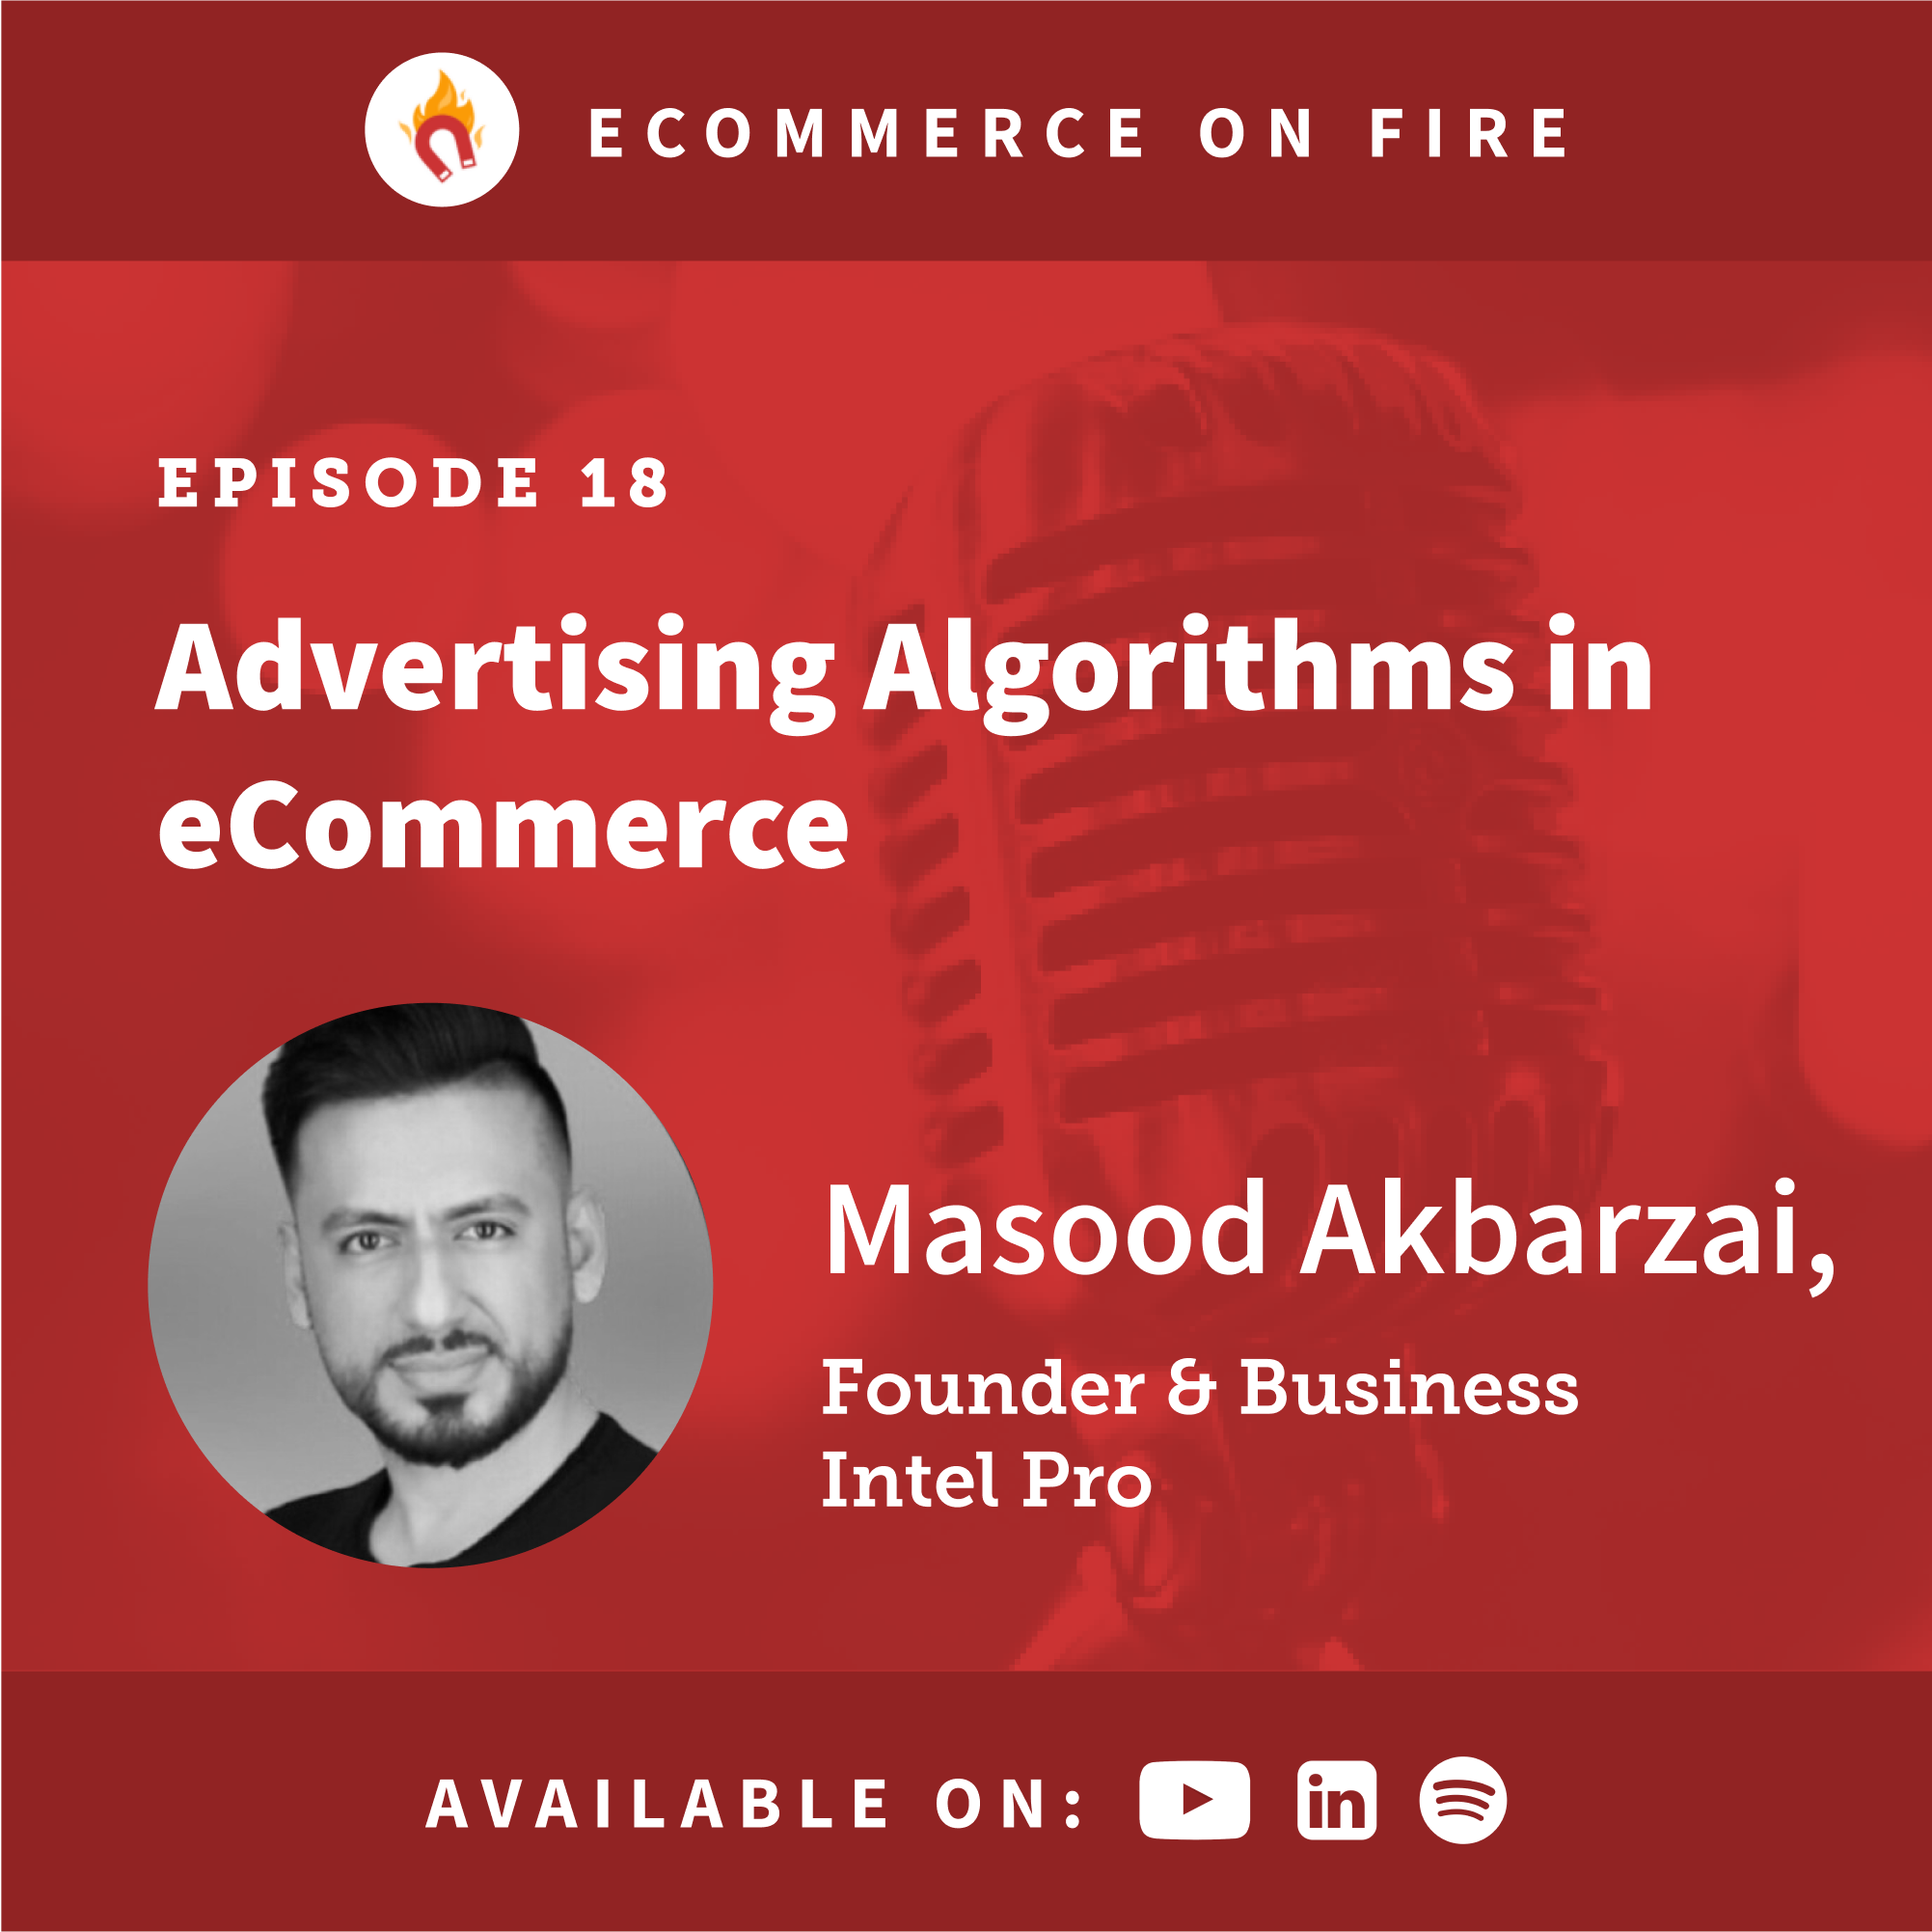 Making the algorithms work in your favour with Masood Akbarzai, Founder @ Business Intel Pro